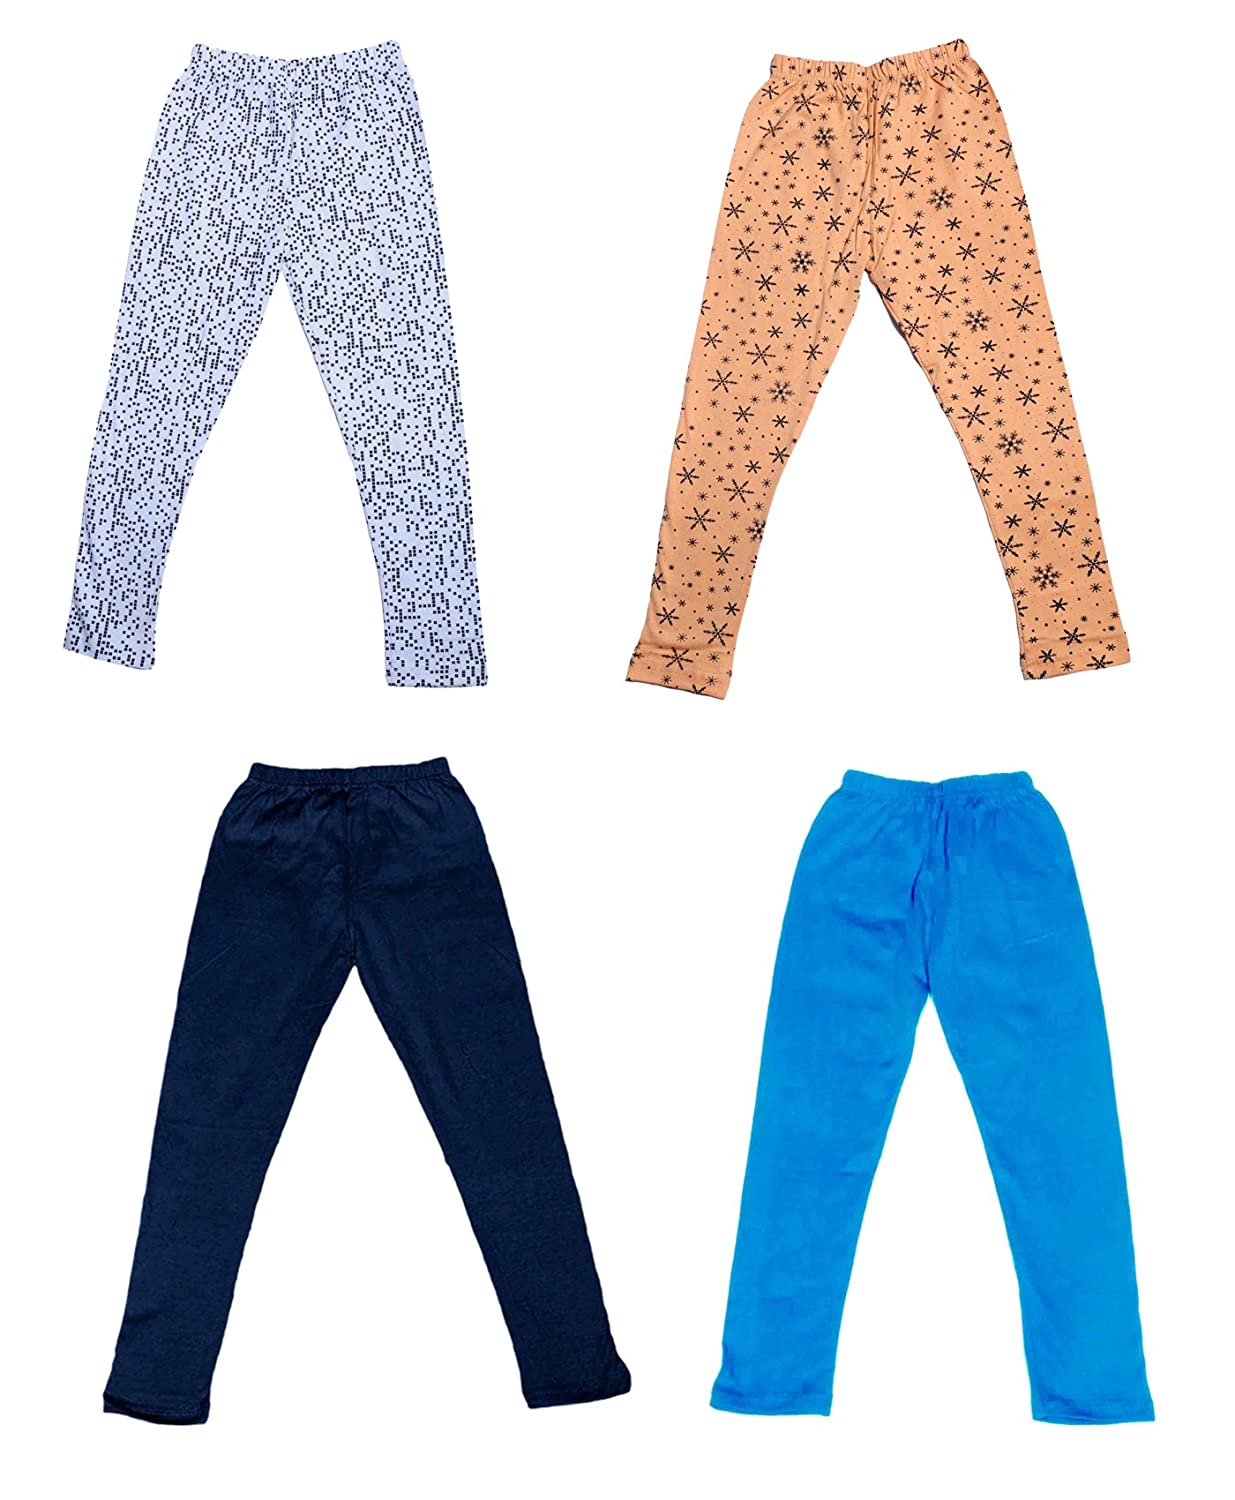 Pack Of 4 and 2 Cotton Printed Legging Pants Indistar Girls 2 Cotton Solid Legging Pants /_Multicolor/_Size-7-8 Years/_71410111921-IW-P4-30